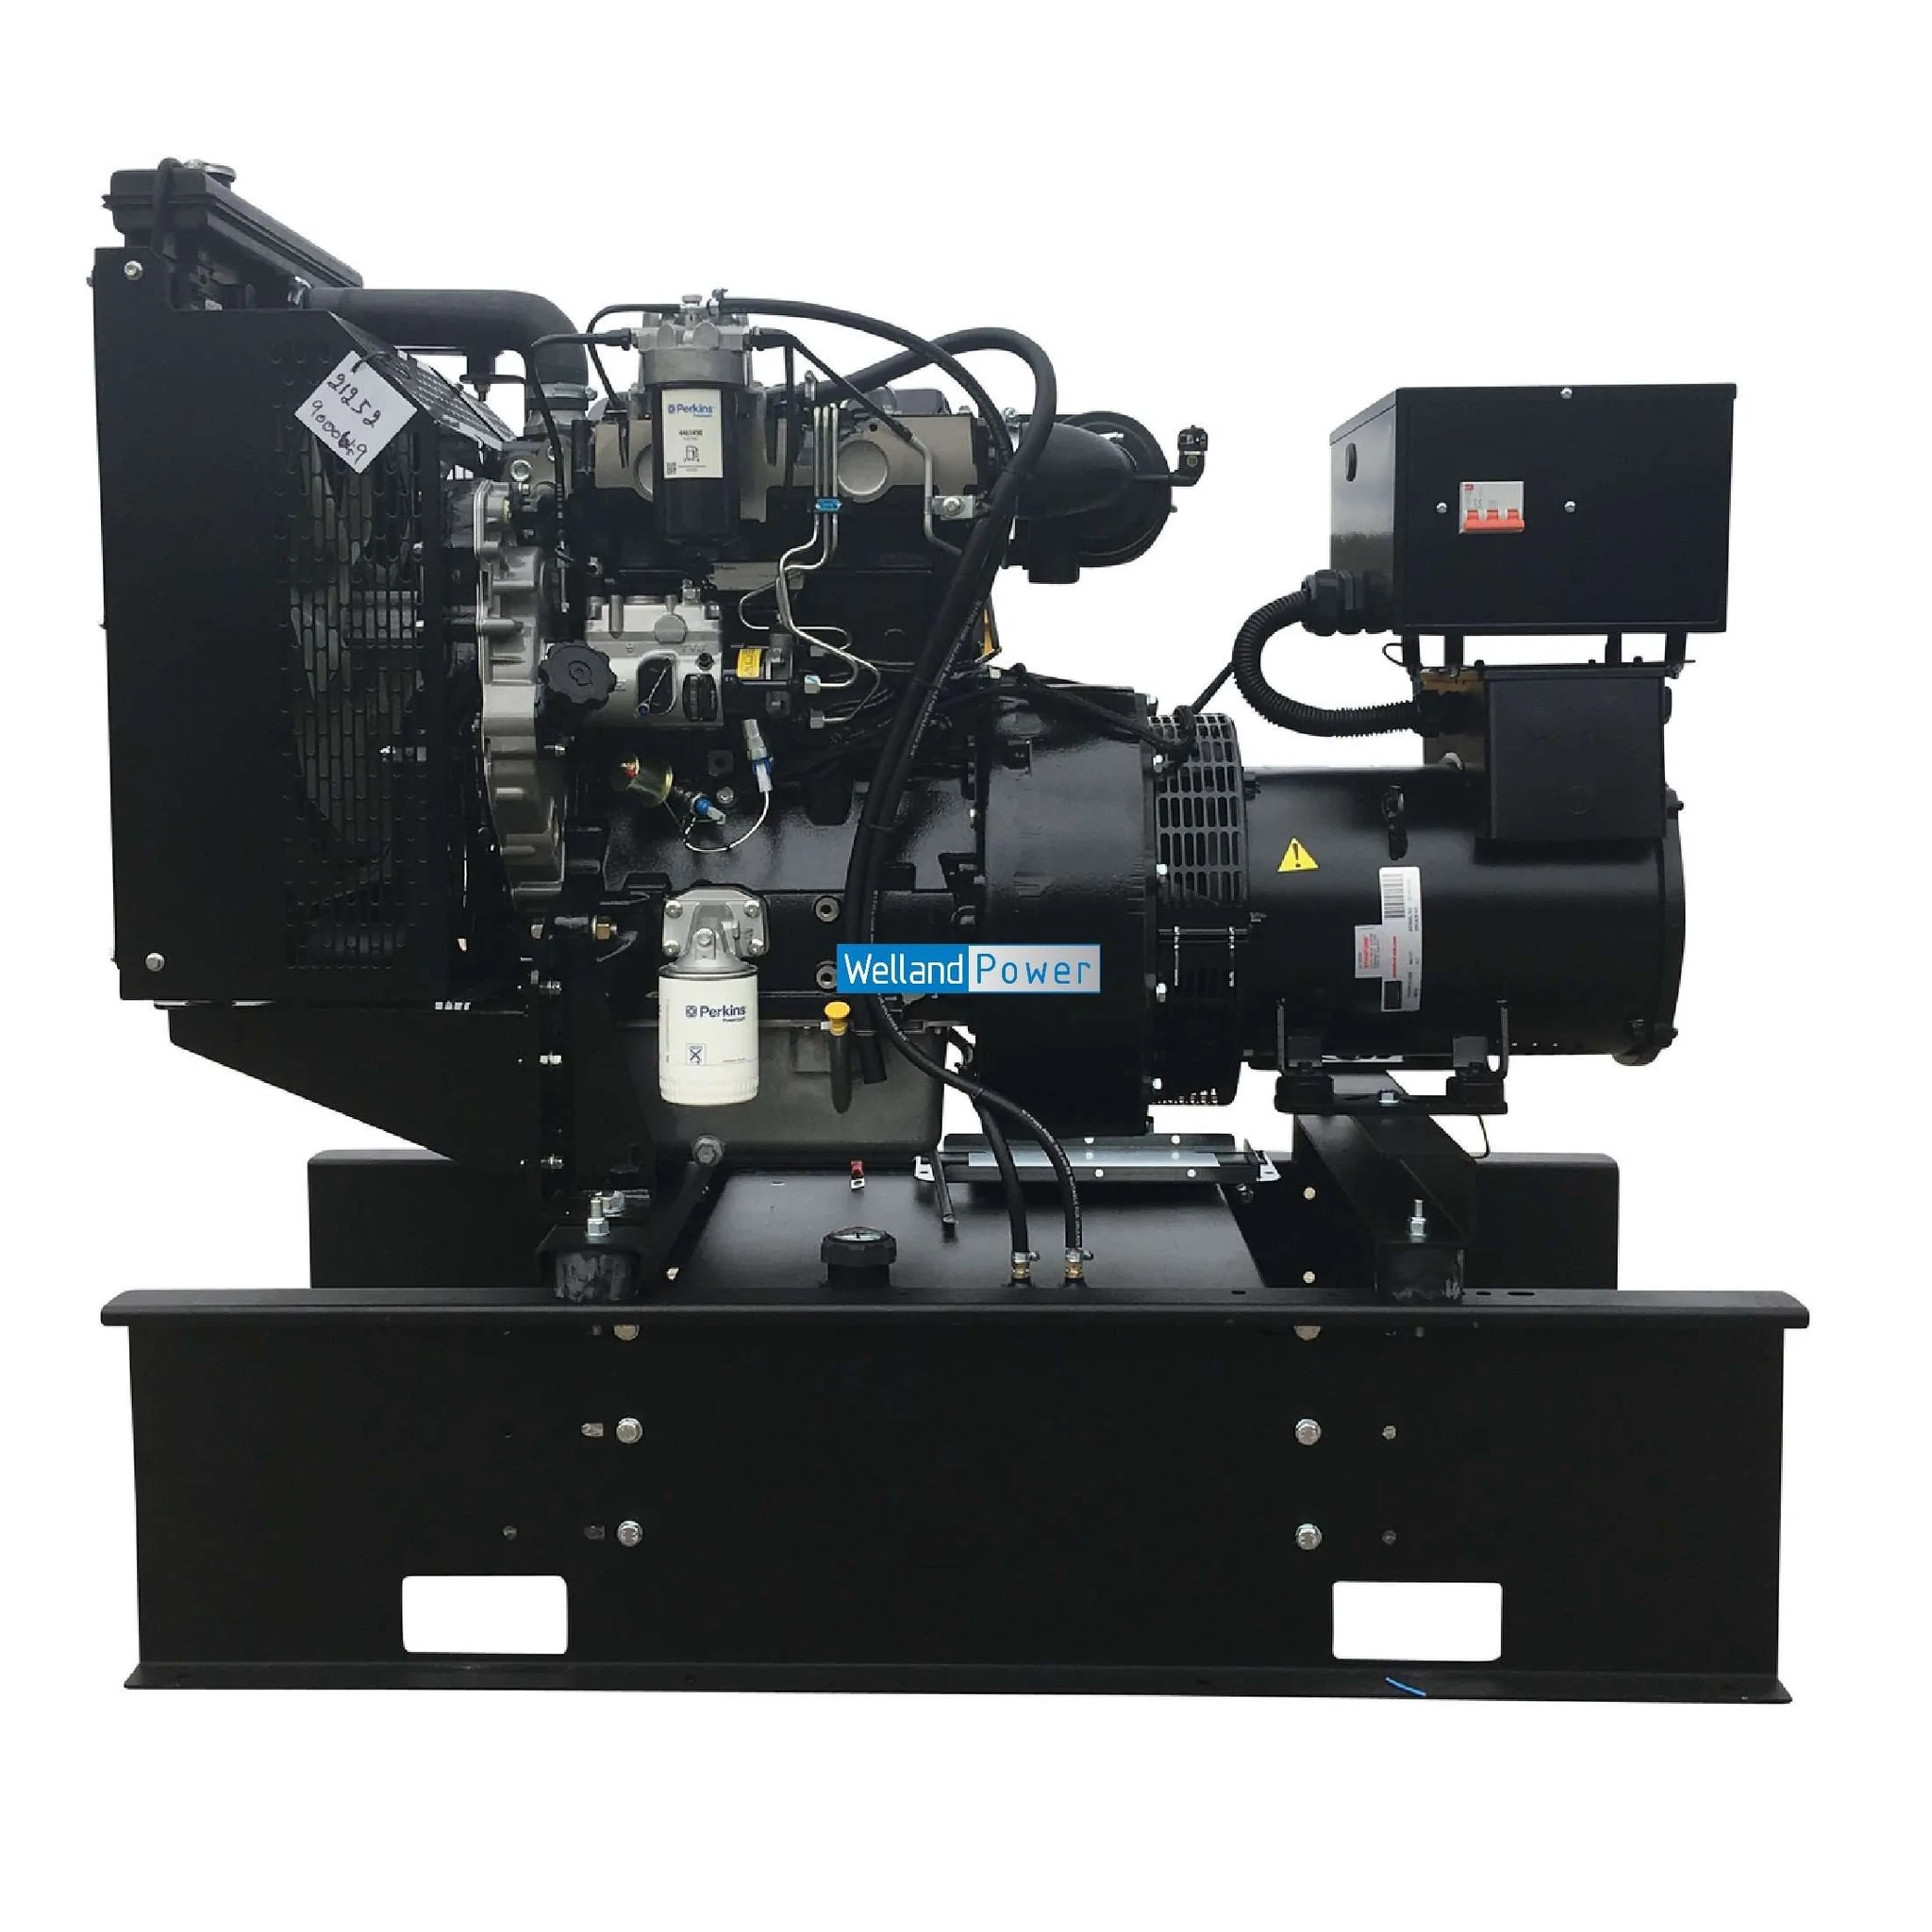 medium resolution of a welland power wp13 diesel generator powered by a perkins 403a 15g1 diesel engine